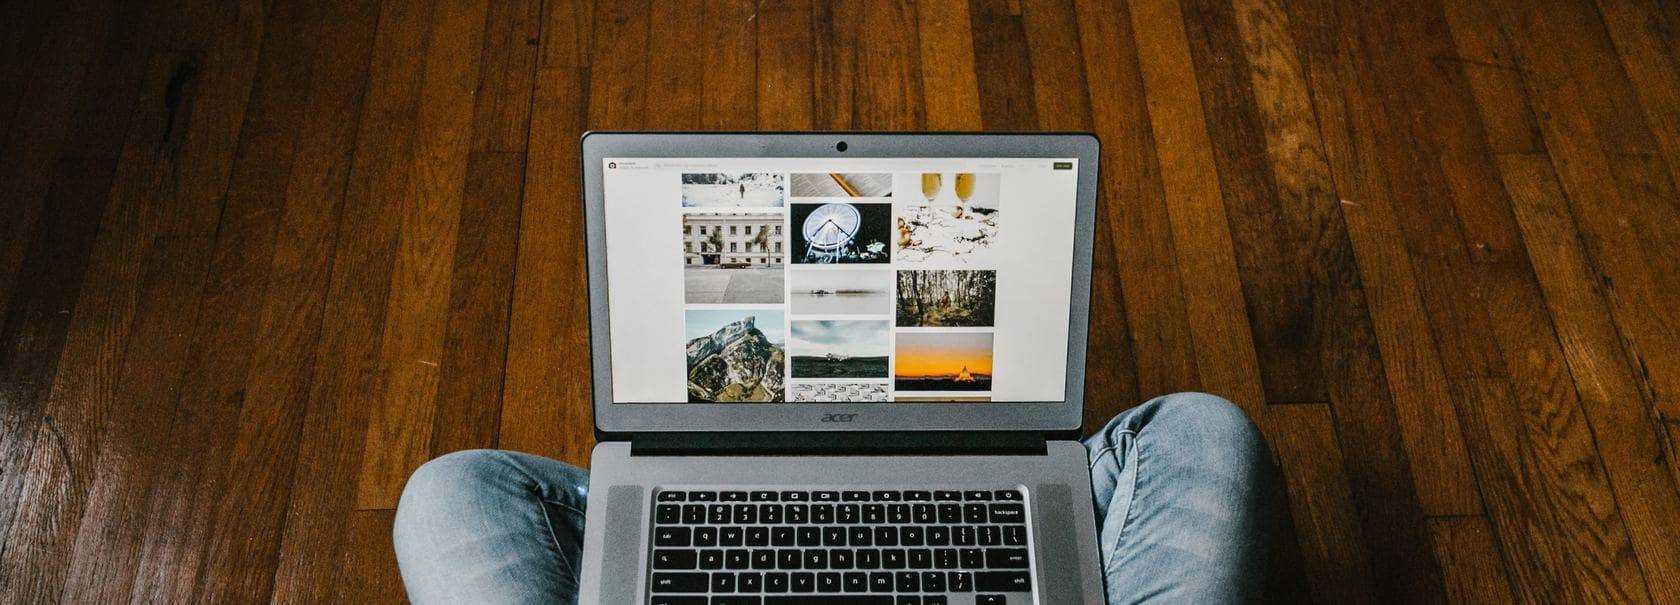 referencer son site sur google de andrew neel via unsplash